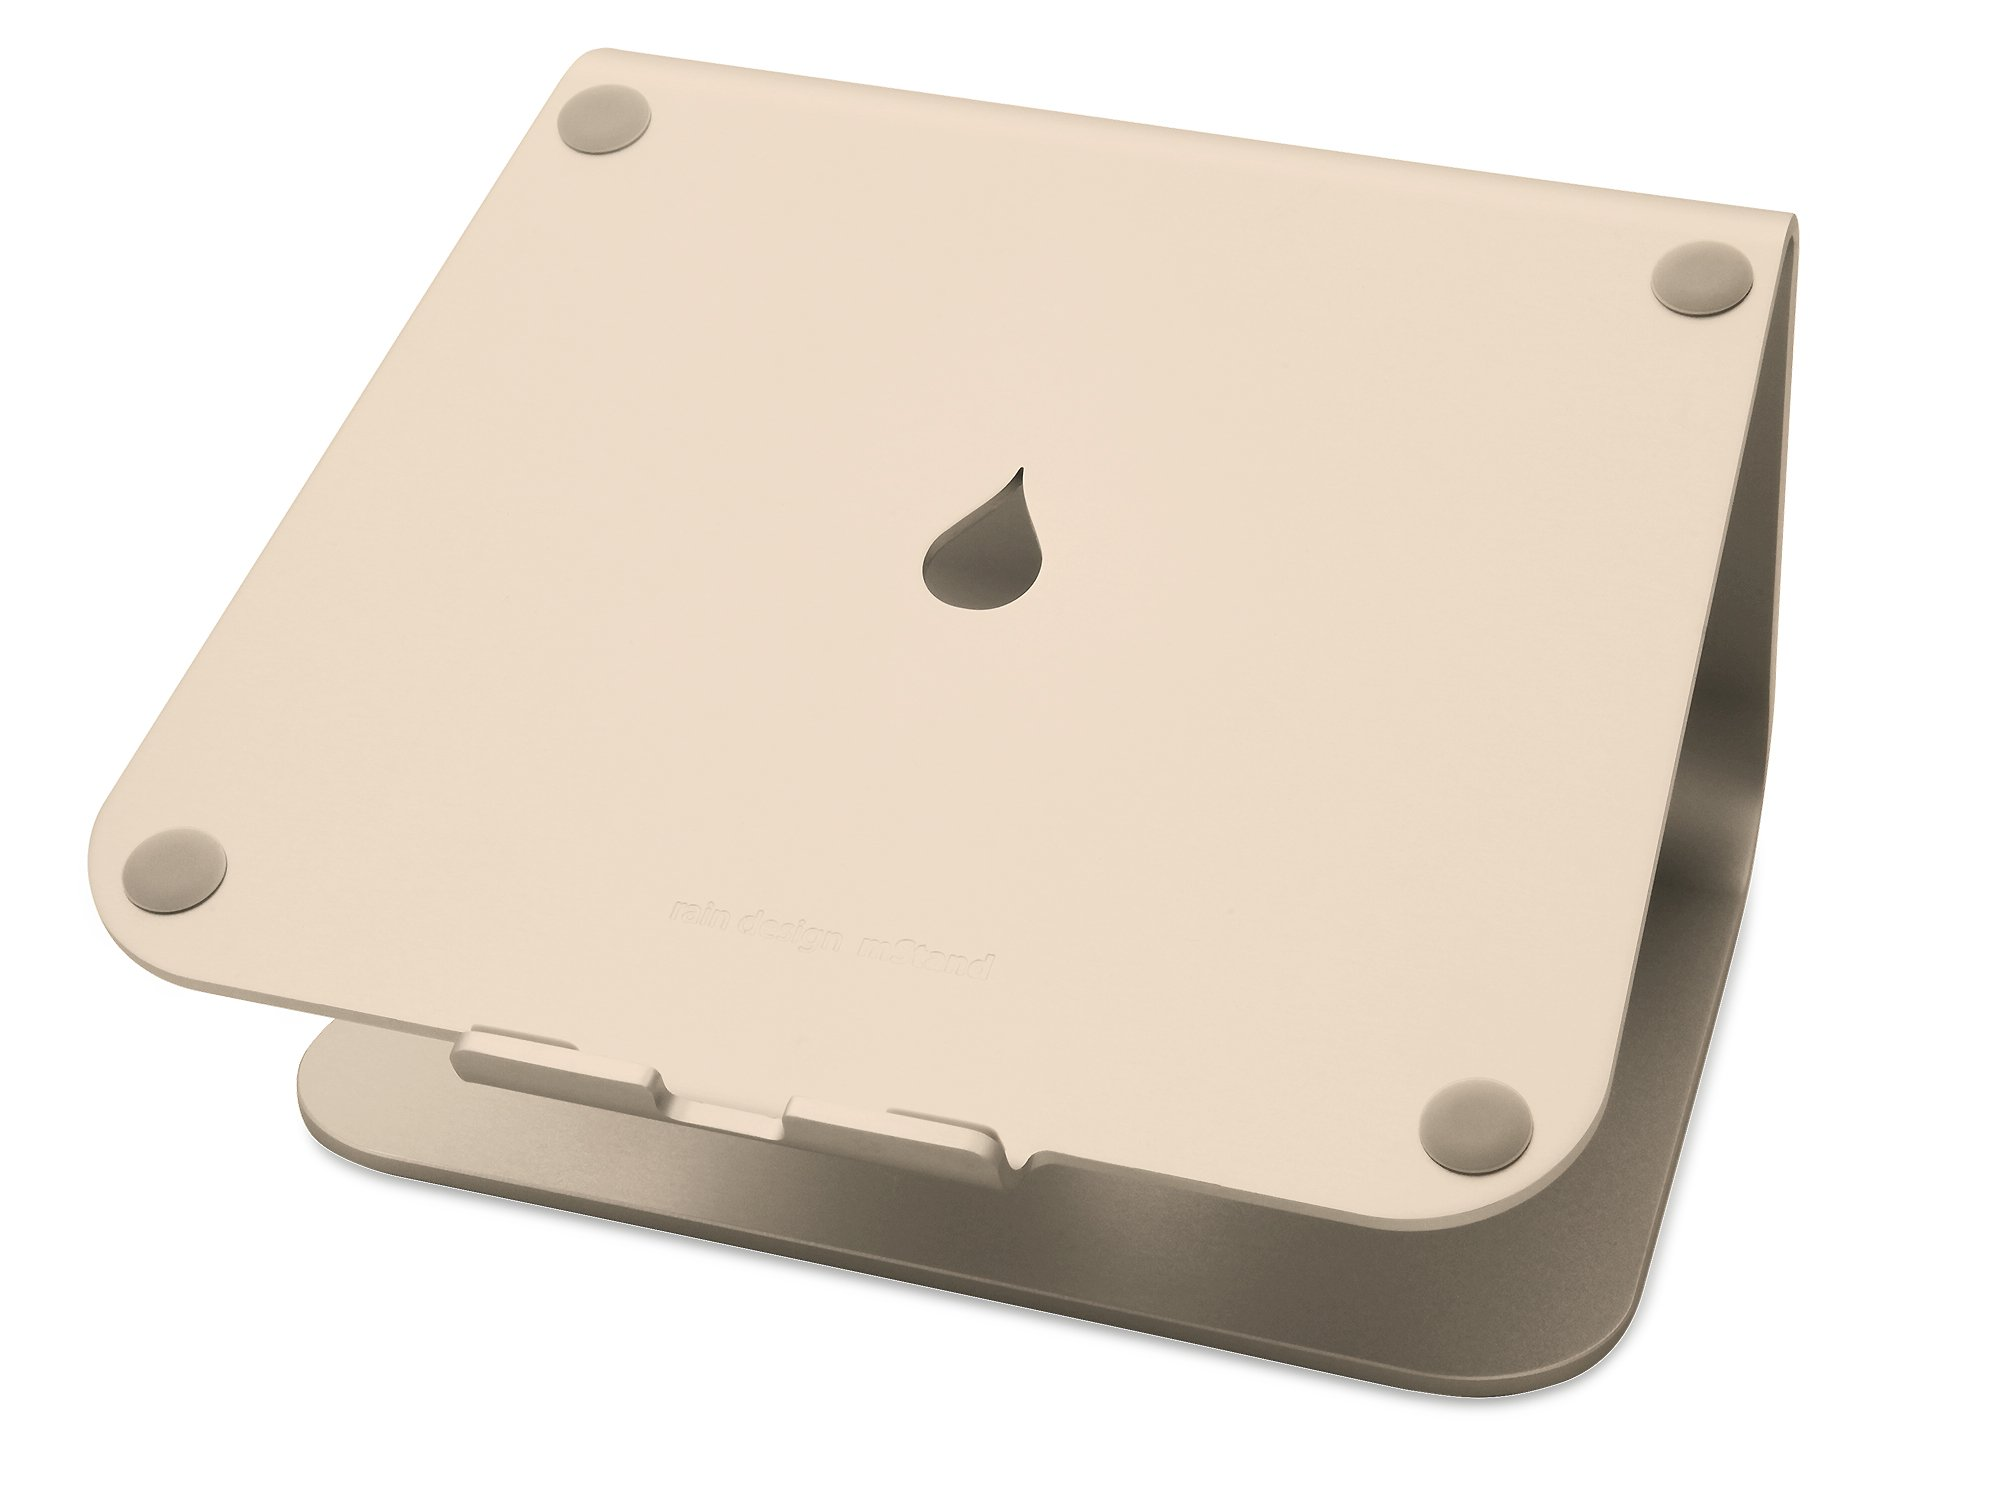 Rain Design mStand360 Laptop Stand with Swivel Base, Gold (Patented)